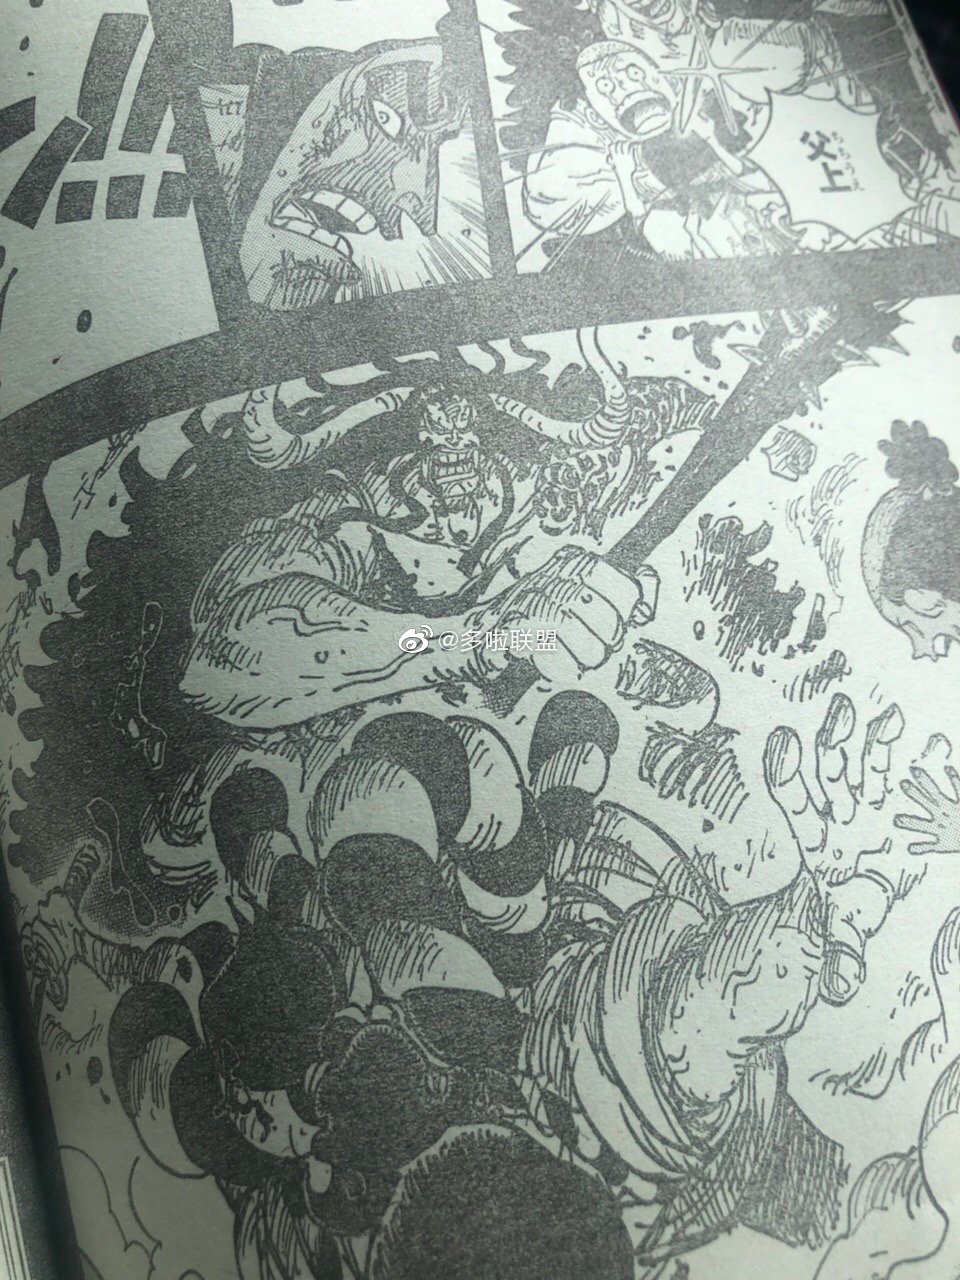 One Piece Spoilers 970 02